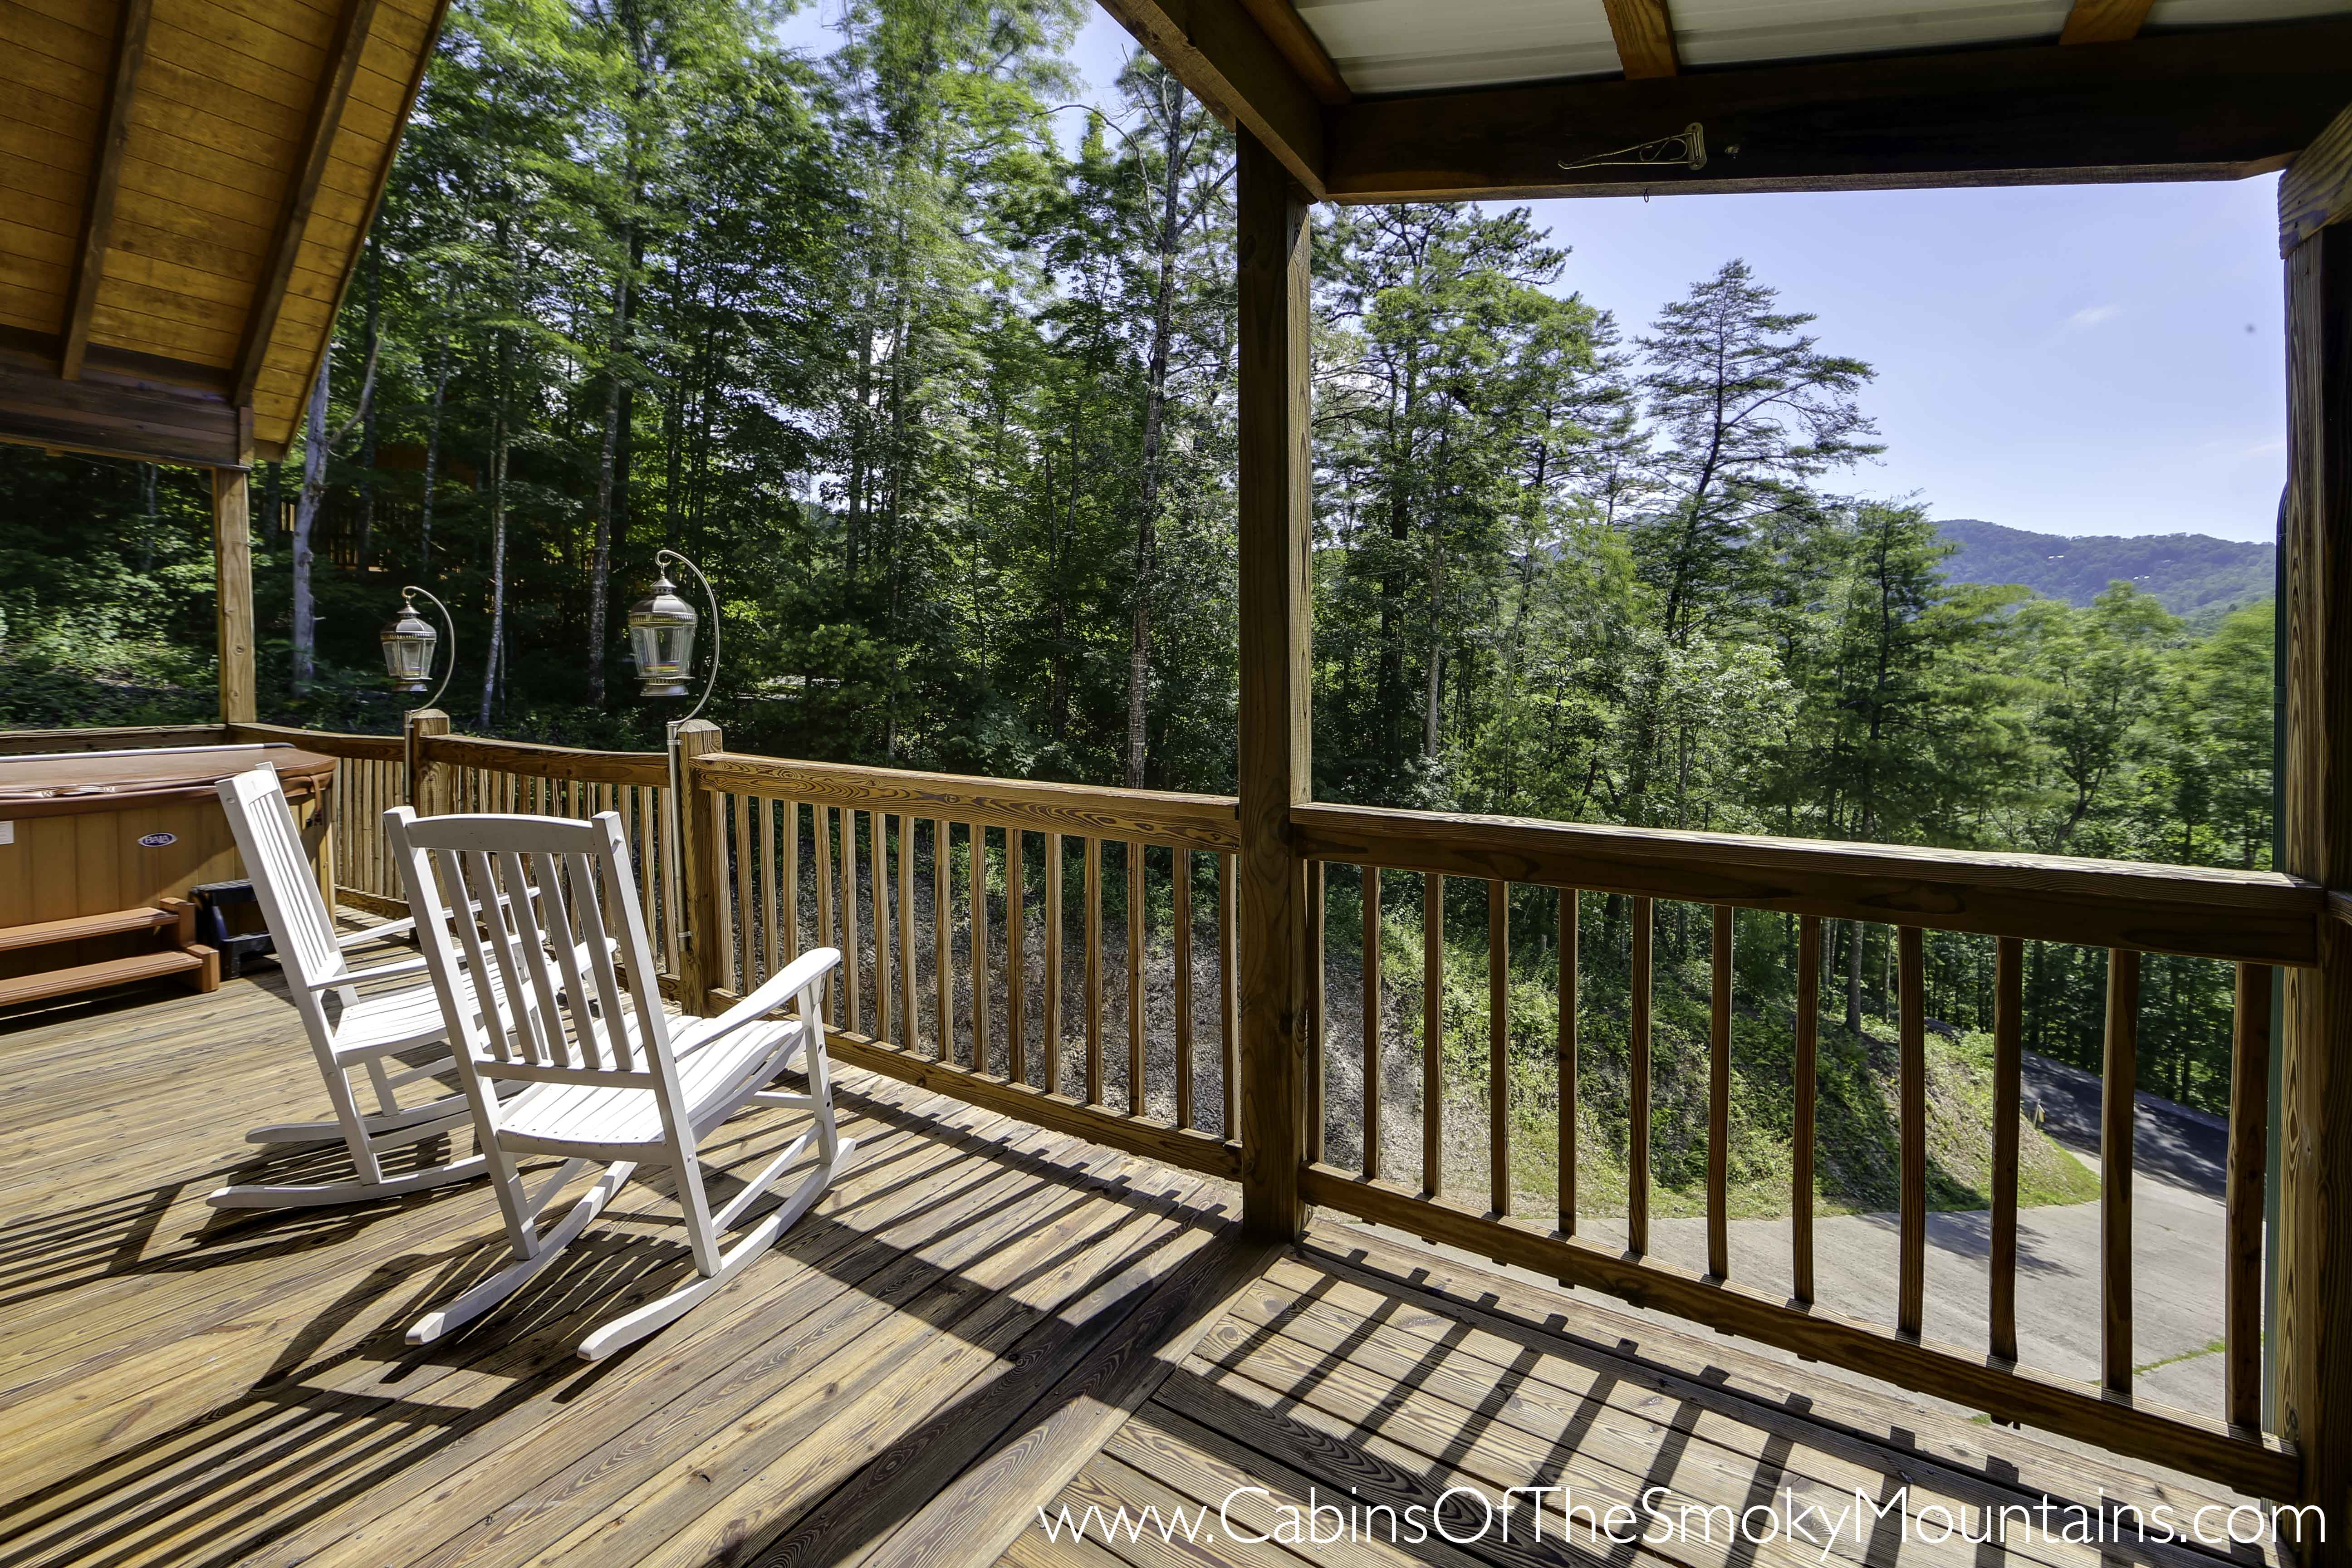 3 Bedroom Cabins In Pigeon Forge Tn